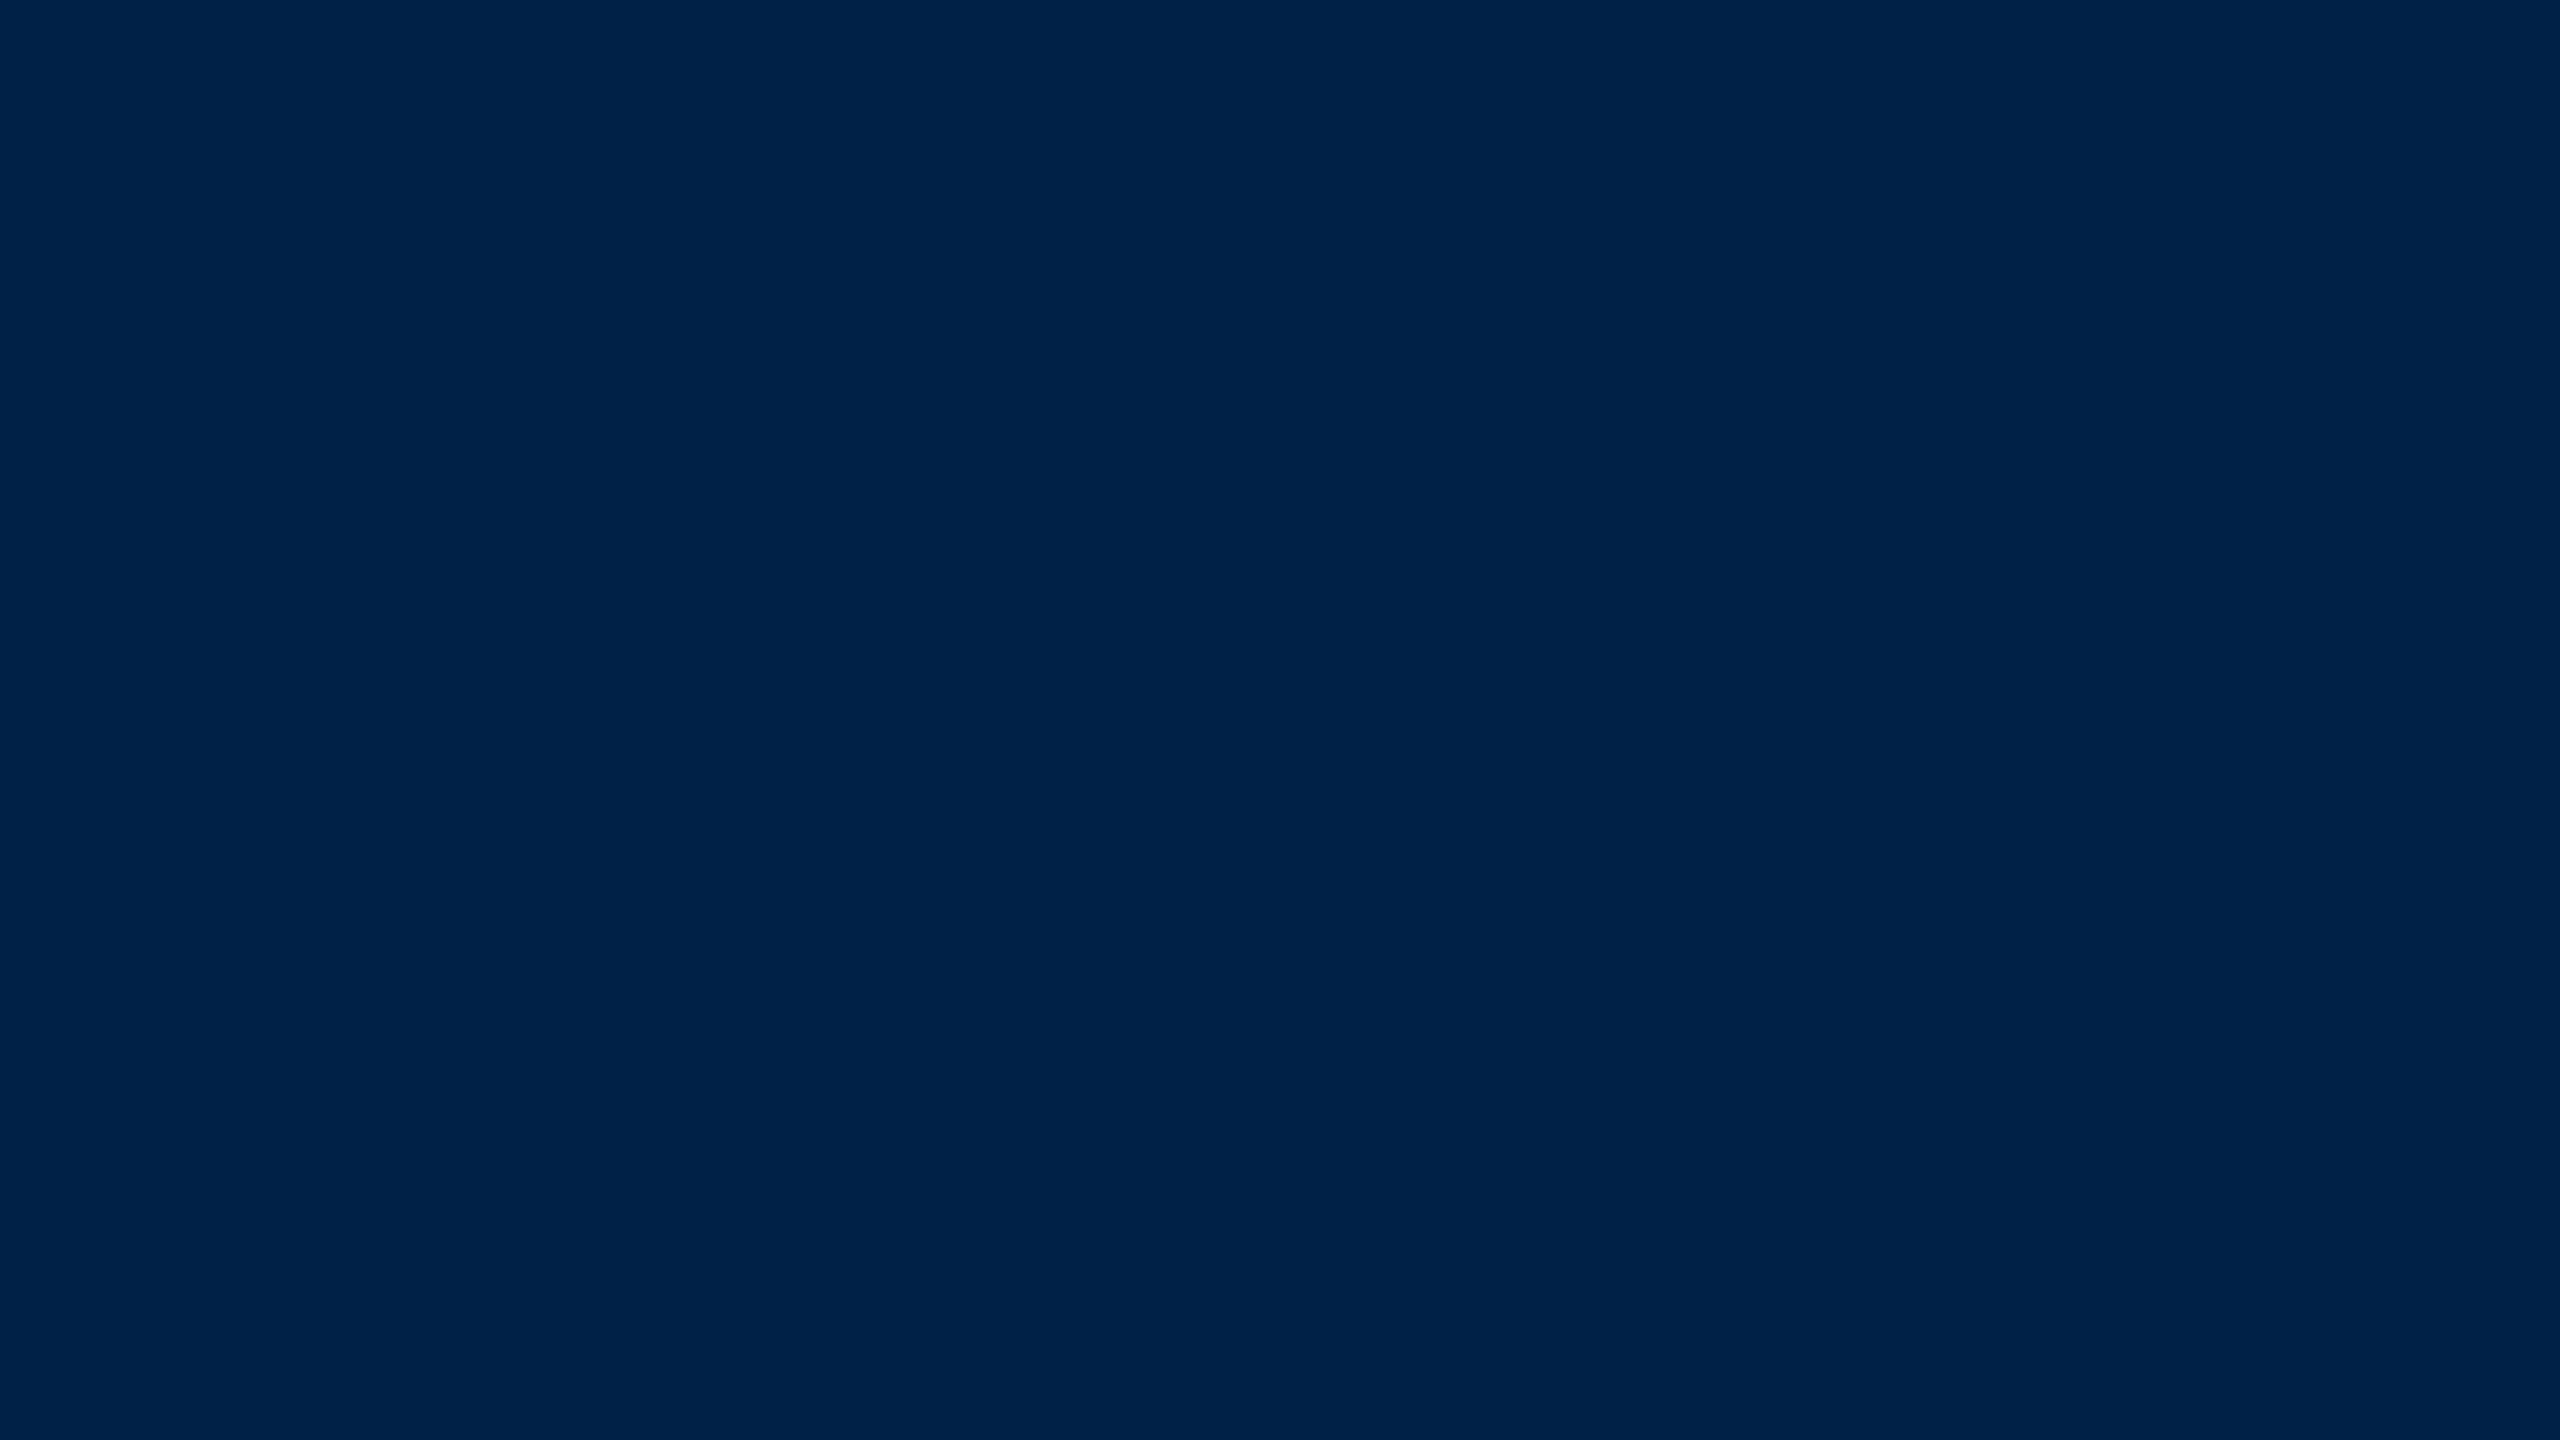 2560x1440 Oxford Blue Solid Color Background